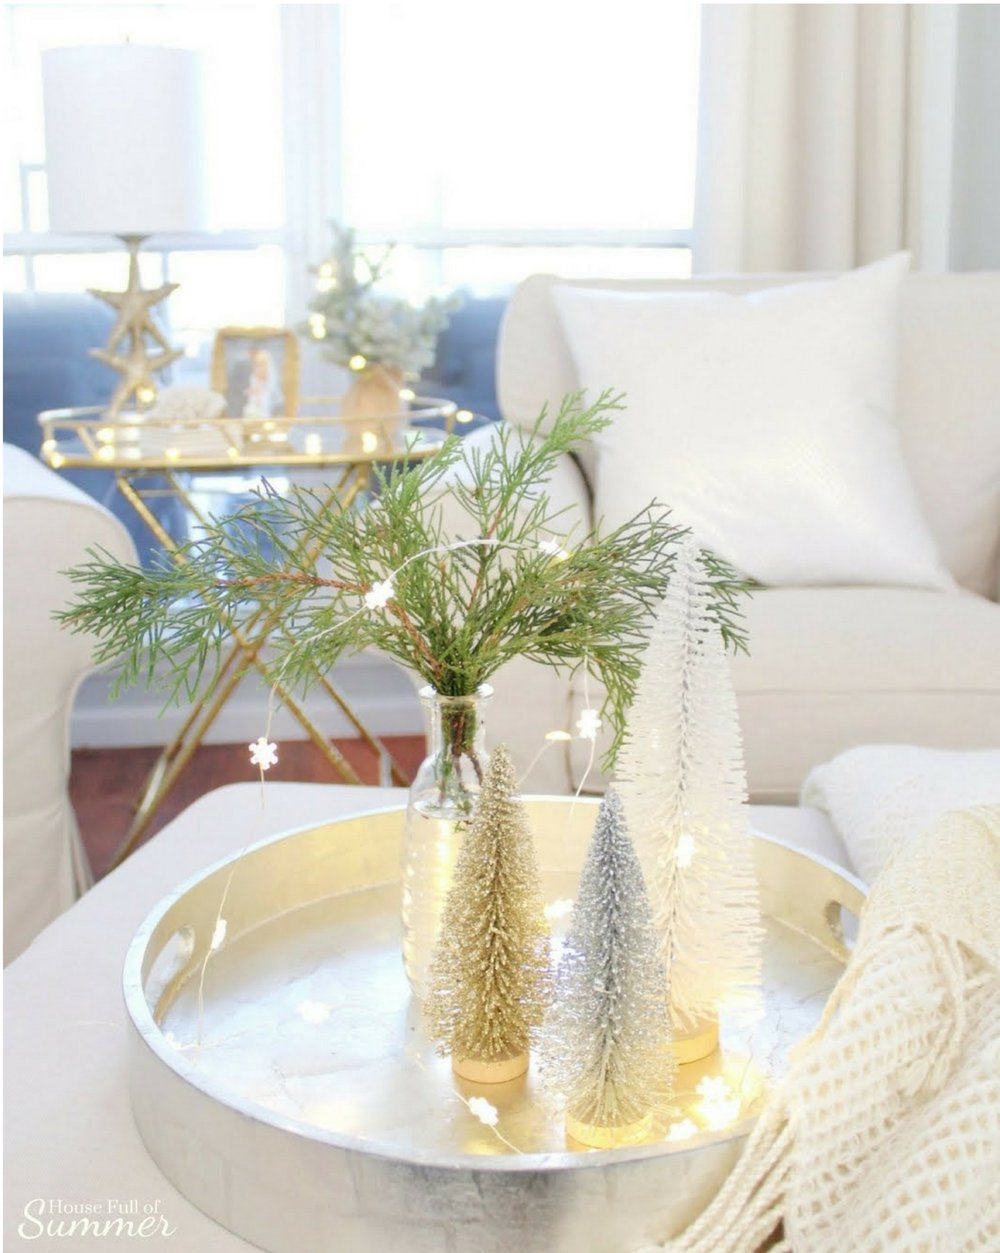 Add New Life to Your Home With This New Year's Resolution | House Full of Summer blog adding greenery to your home, decorating with plants, fronds, trimmings, winter decor, home decor, coastal home interior, capiz chandelier, decor on a budget, neutral winter decor ideas, coastal winter decor, bottle brush trees, fairy lights living room